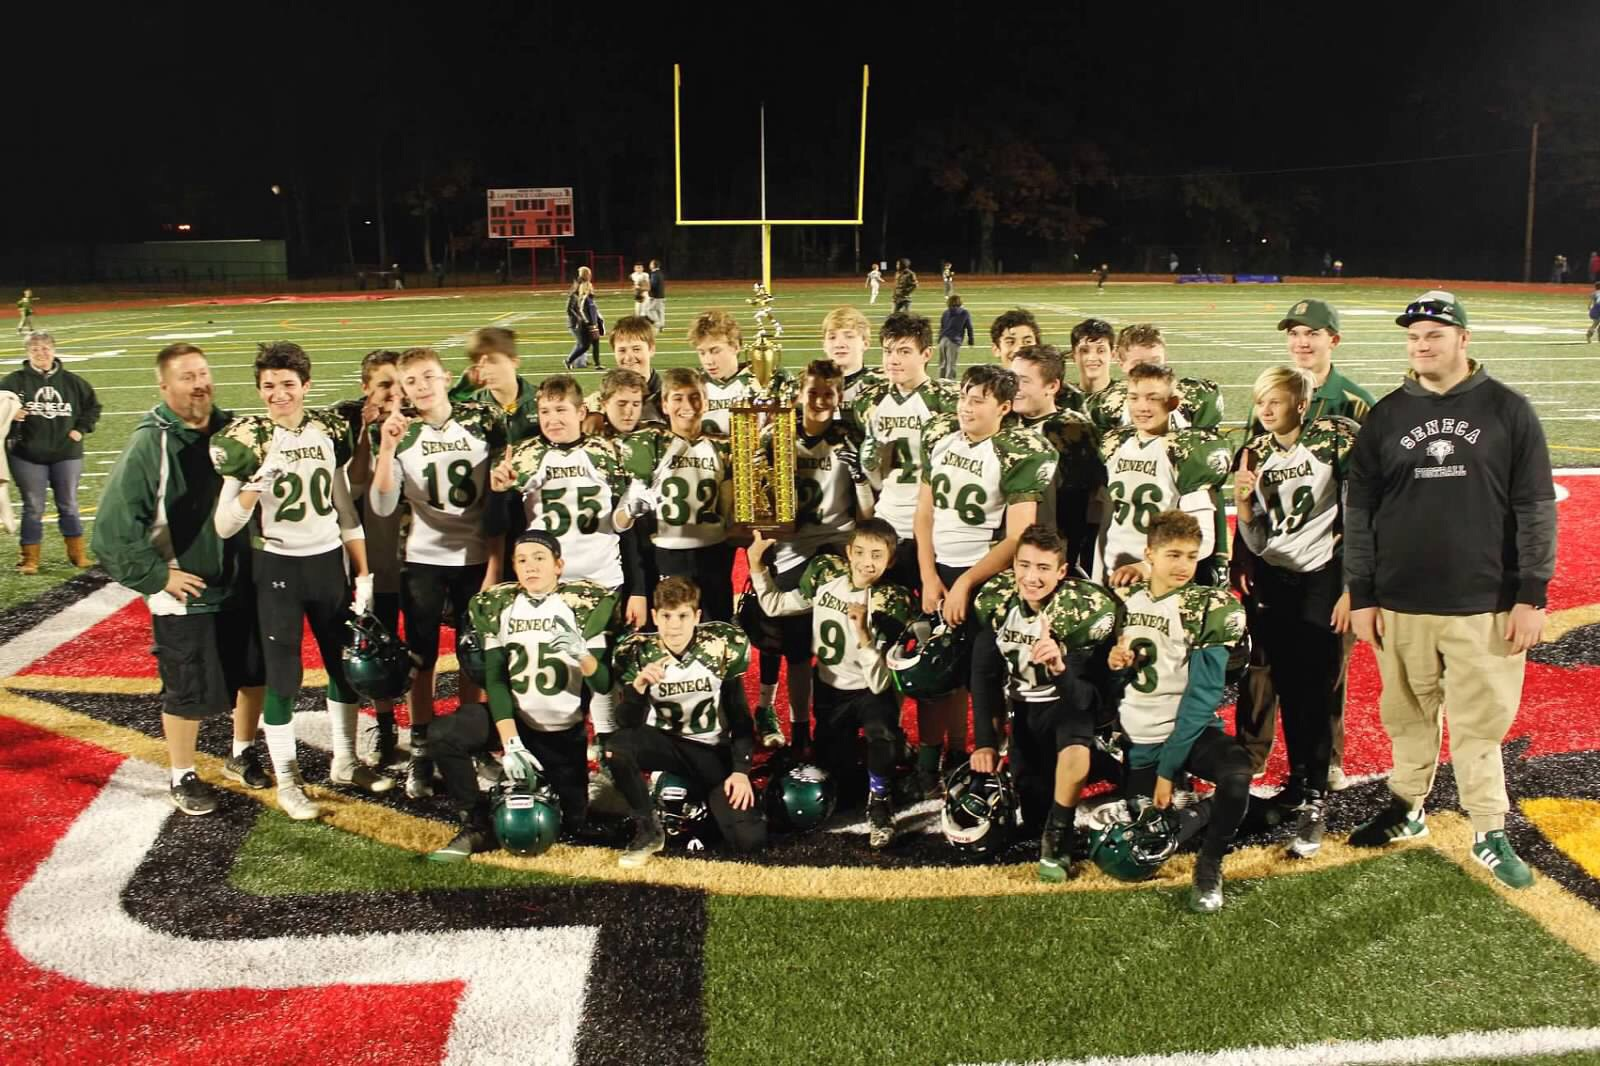 Pee wee football champs